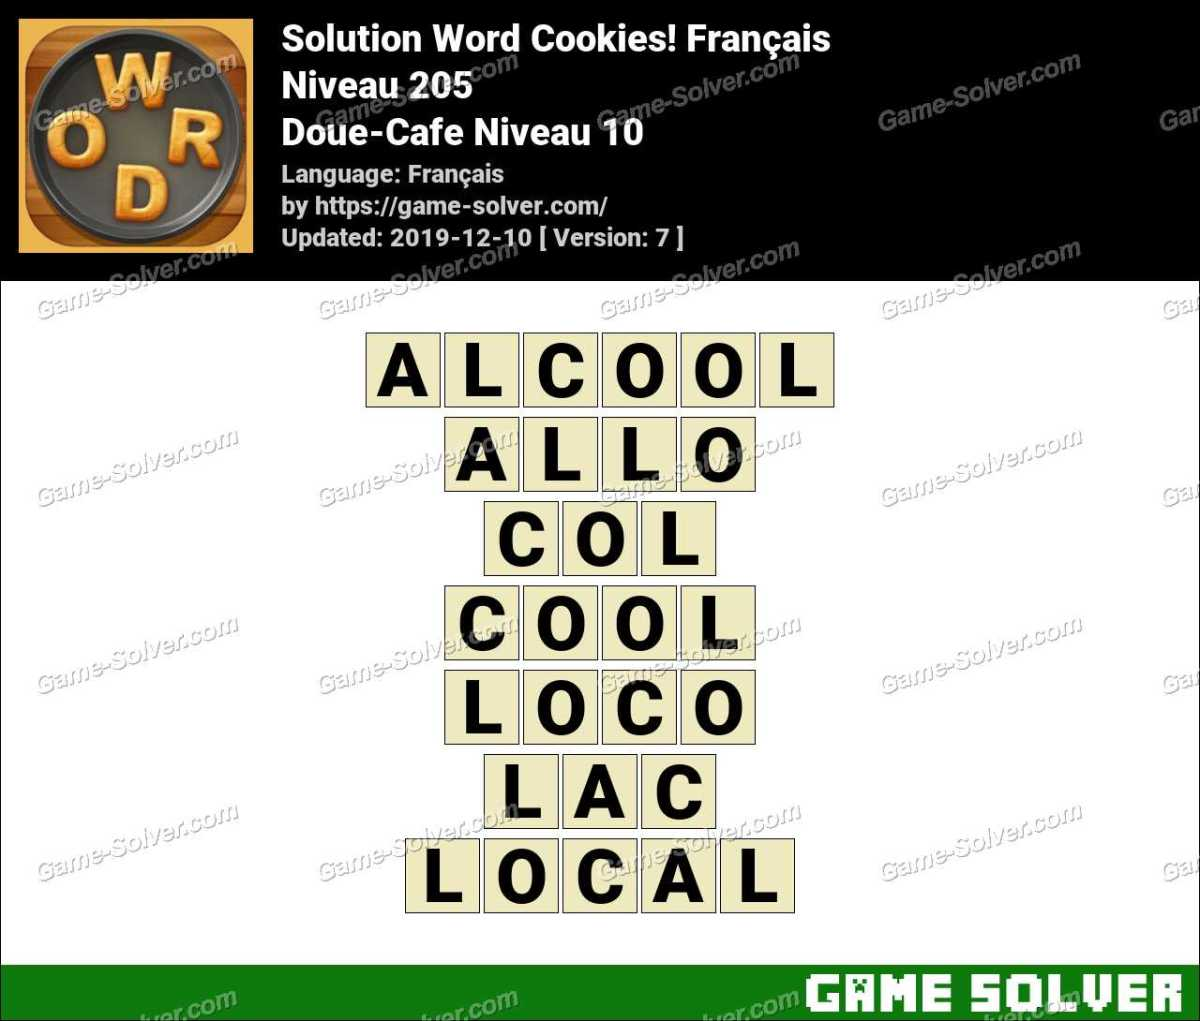 Solution Word Cookies Doue-Cafe Niveau 10